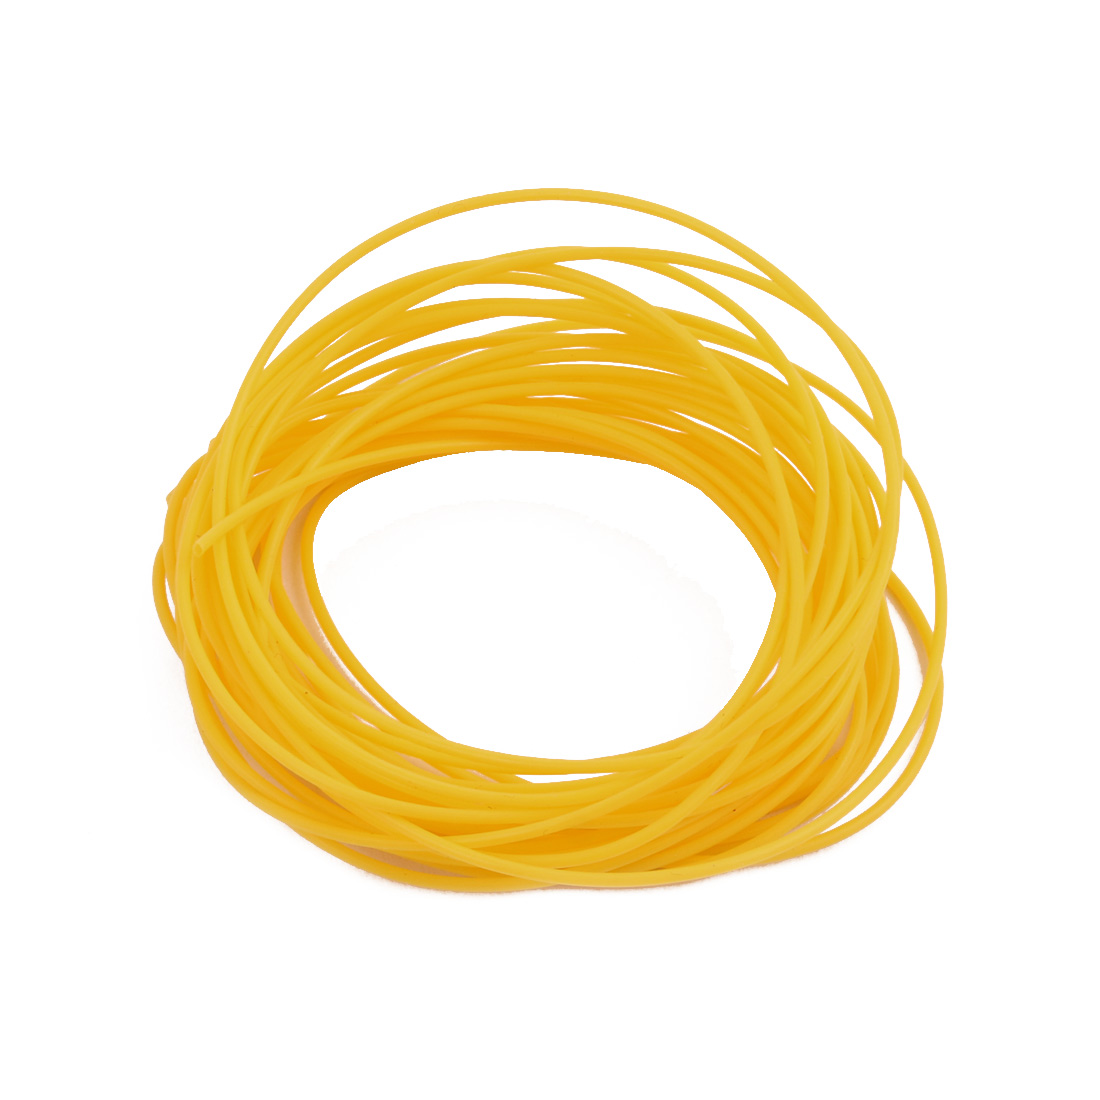 0.81mmx1.11mm PTFE Resistant High Temperature Yellow Tubing 10 Meters 32.8Ft